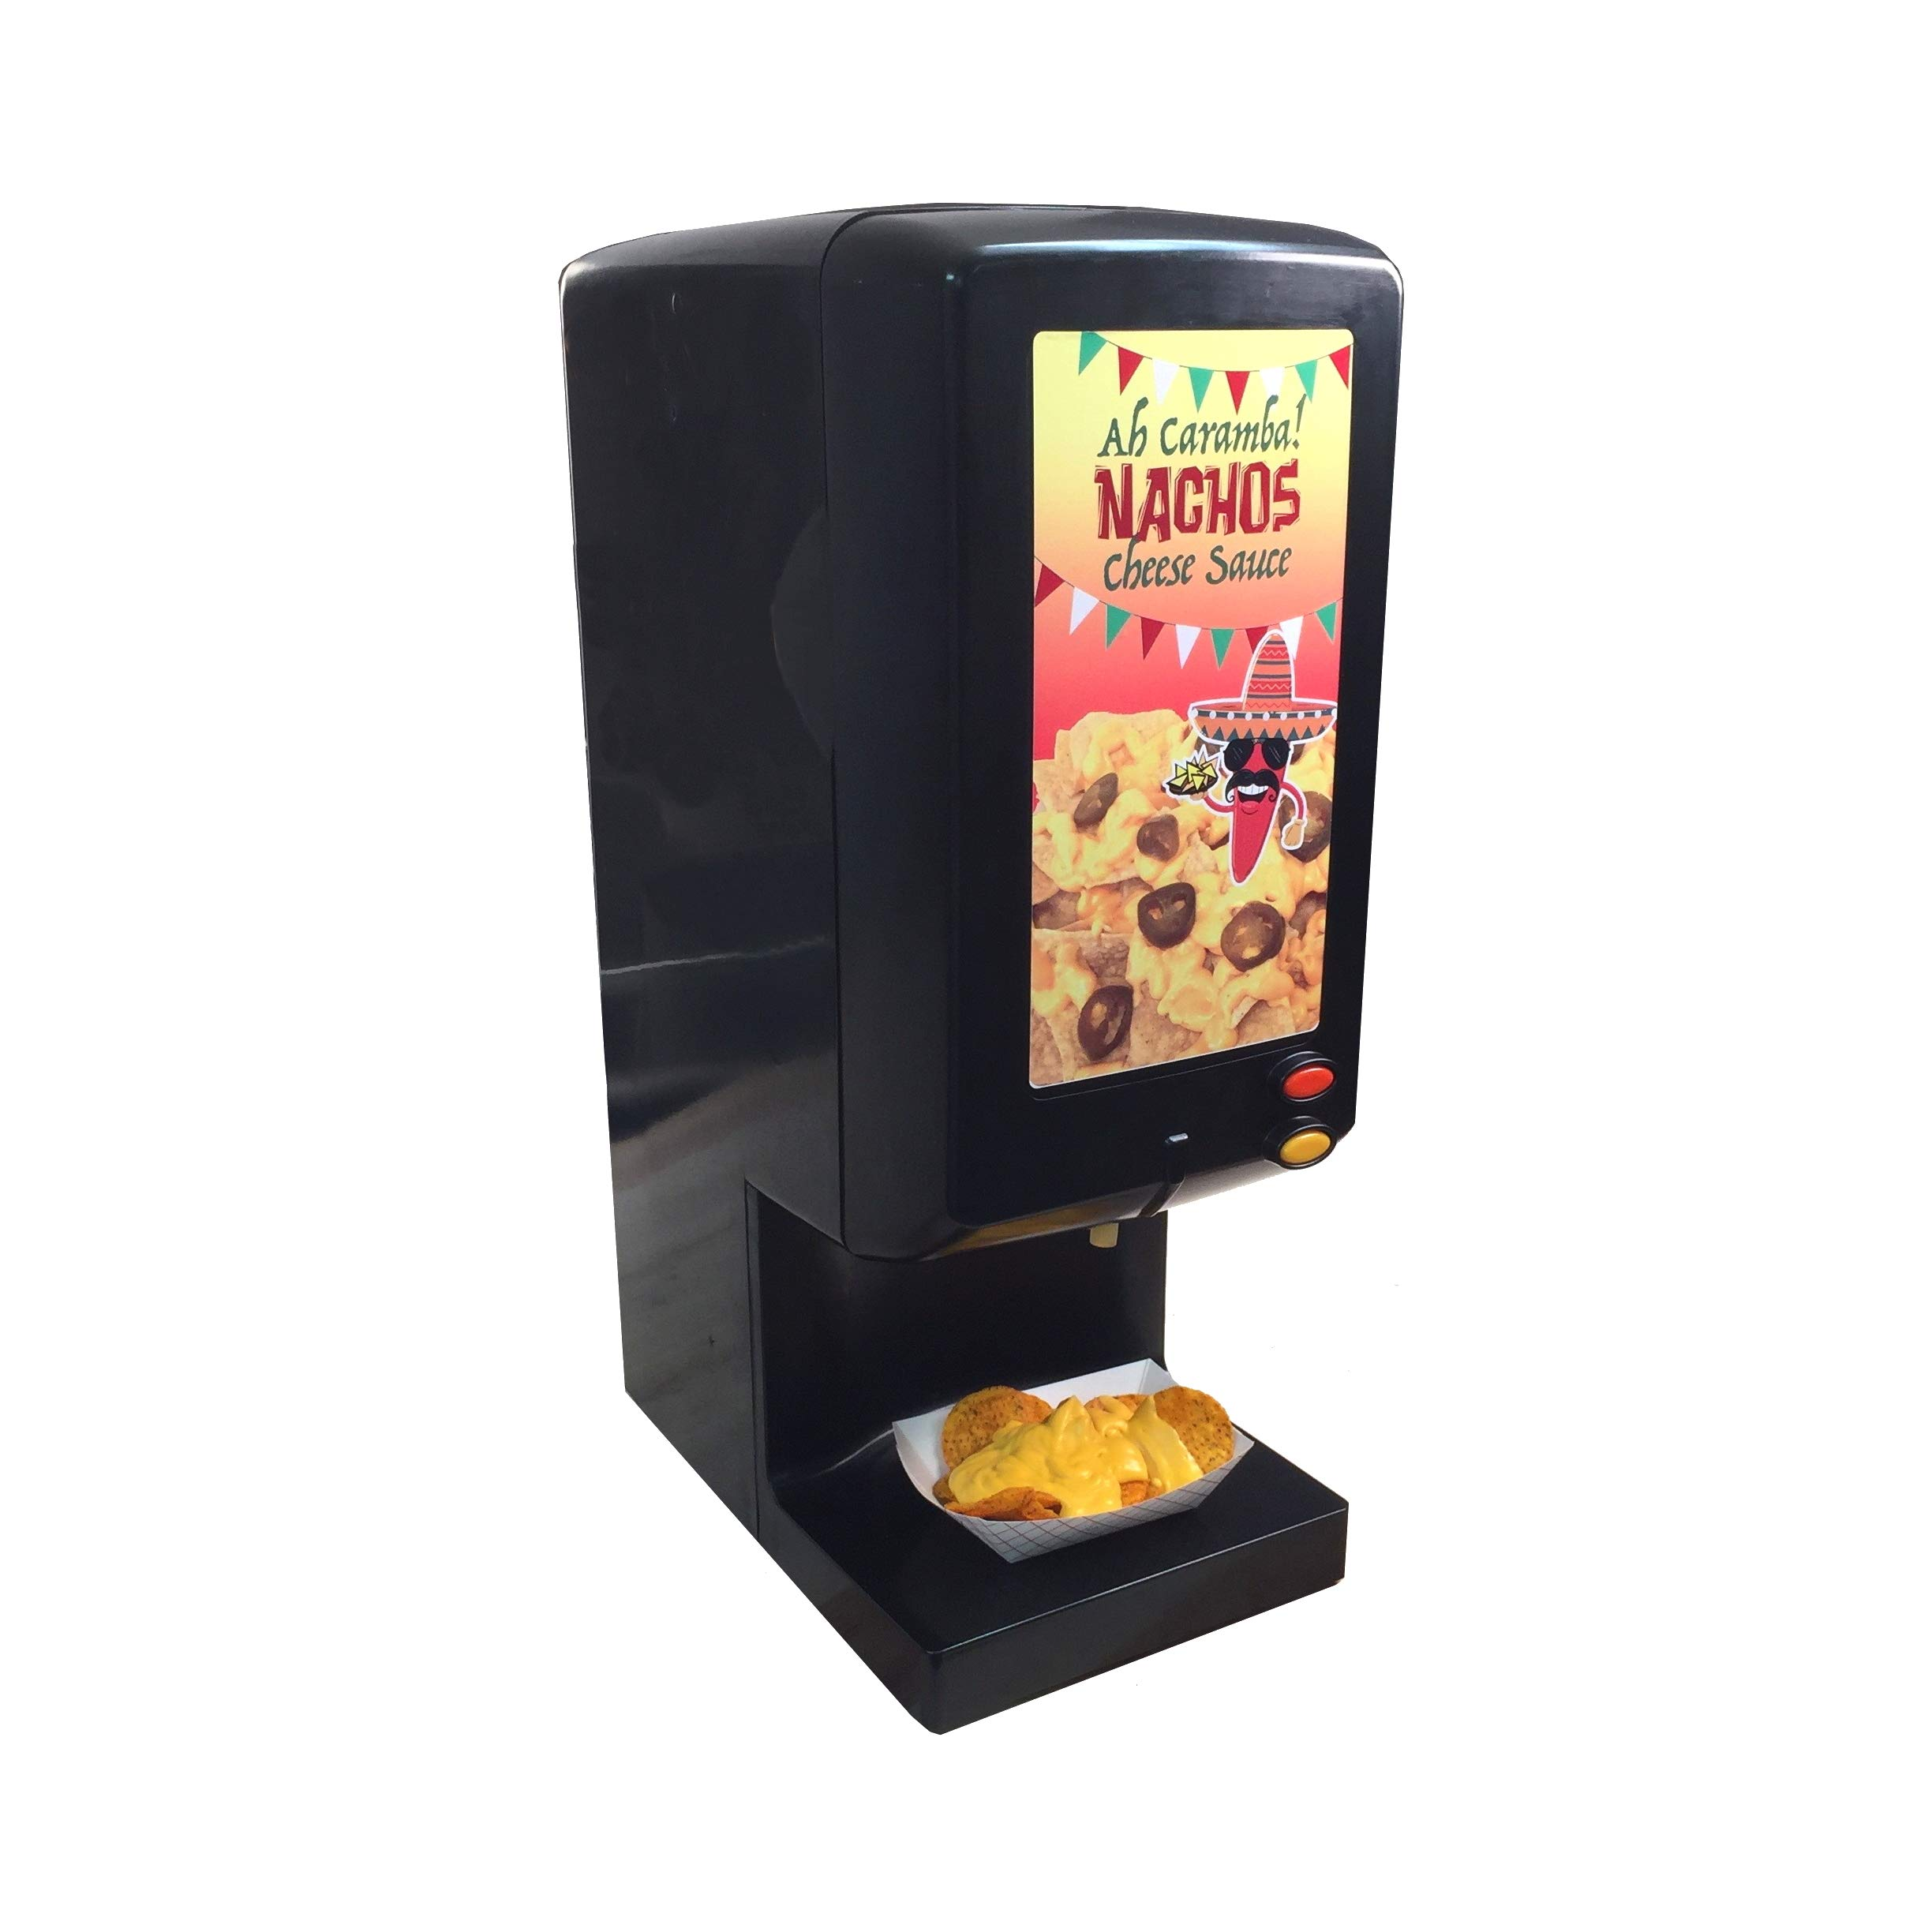 Paragon 2030 Ay Caramba Nacho Cheese Warming Dispenser, Black